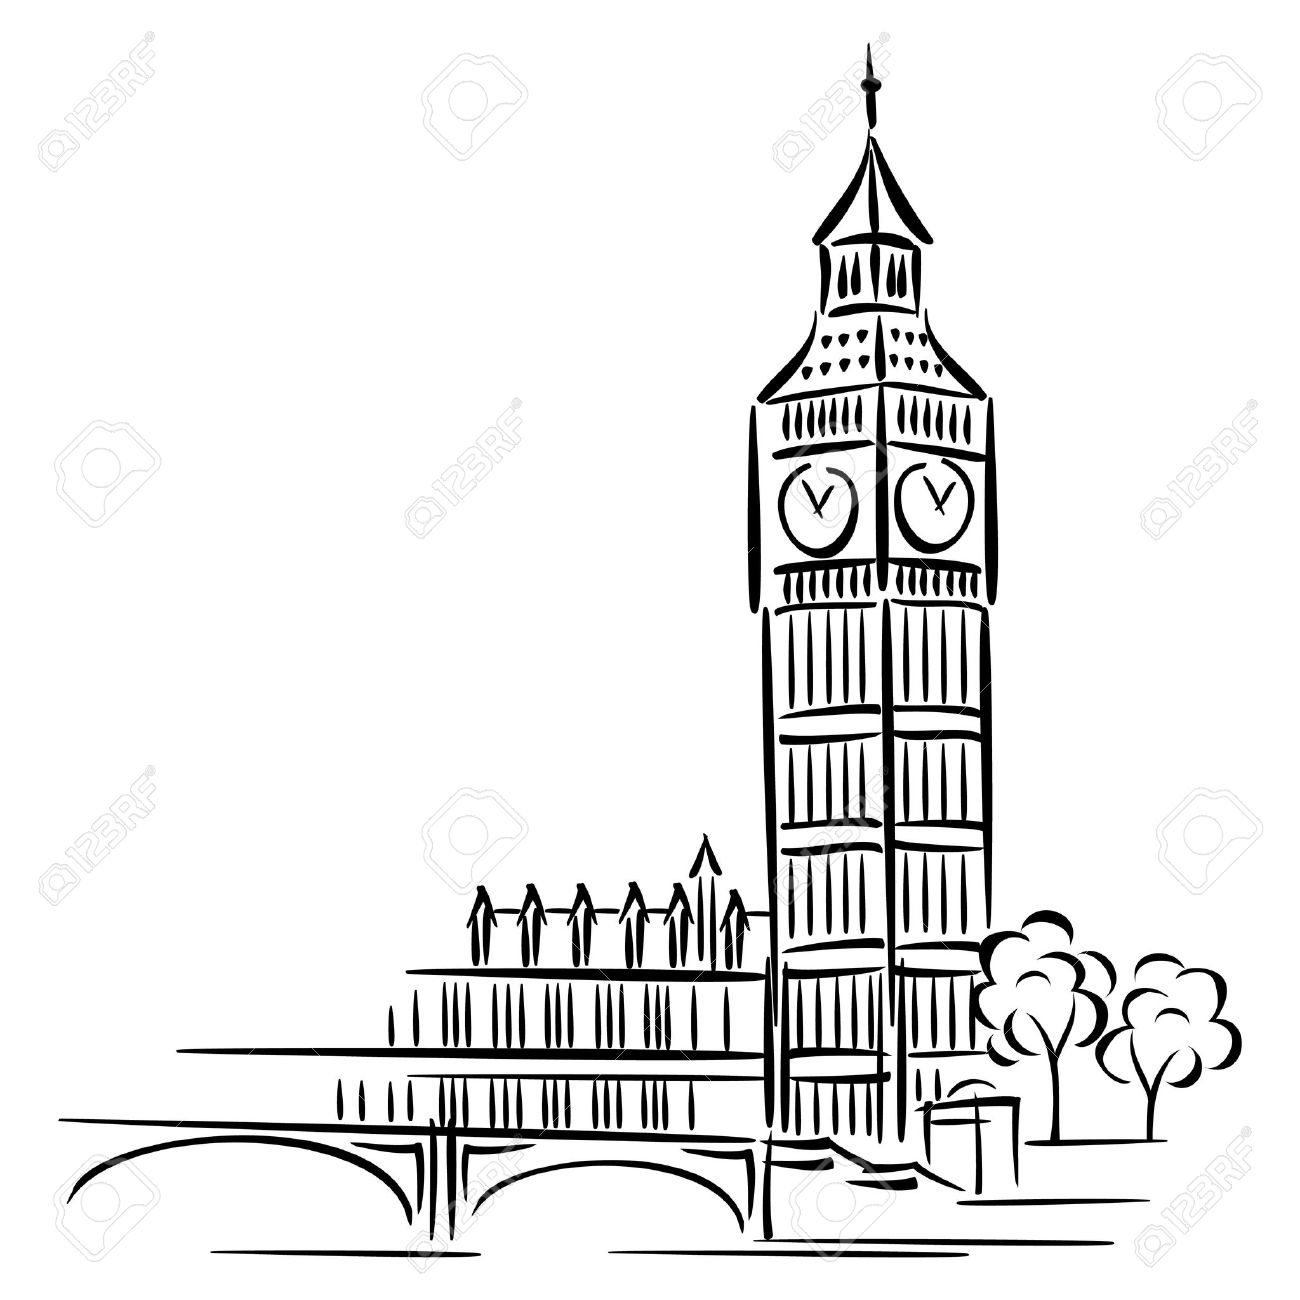 images of Big Ben in London .